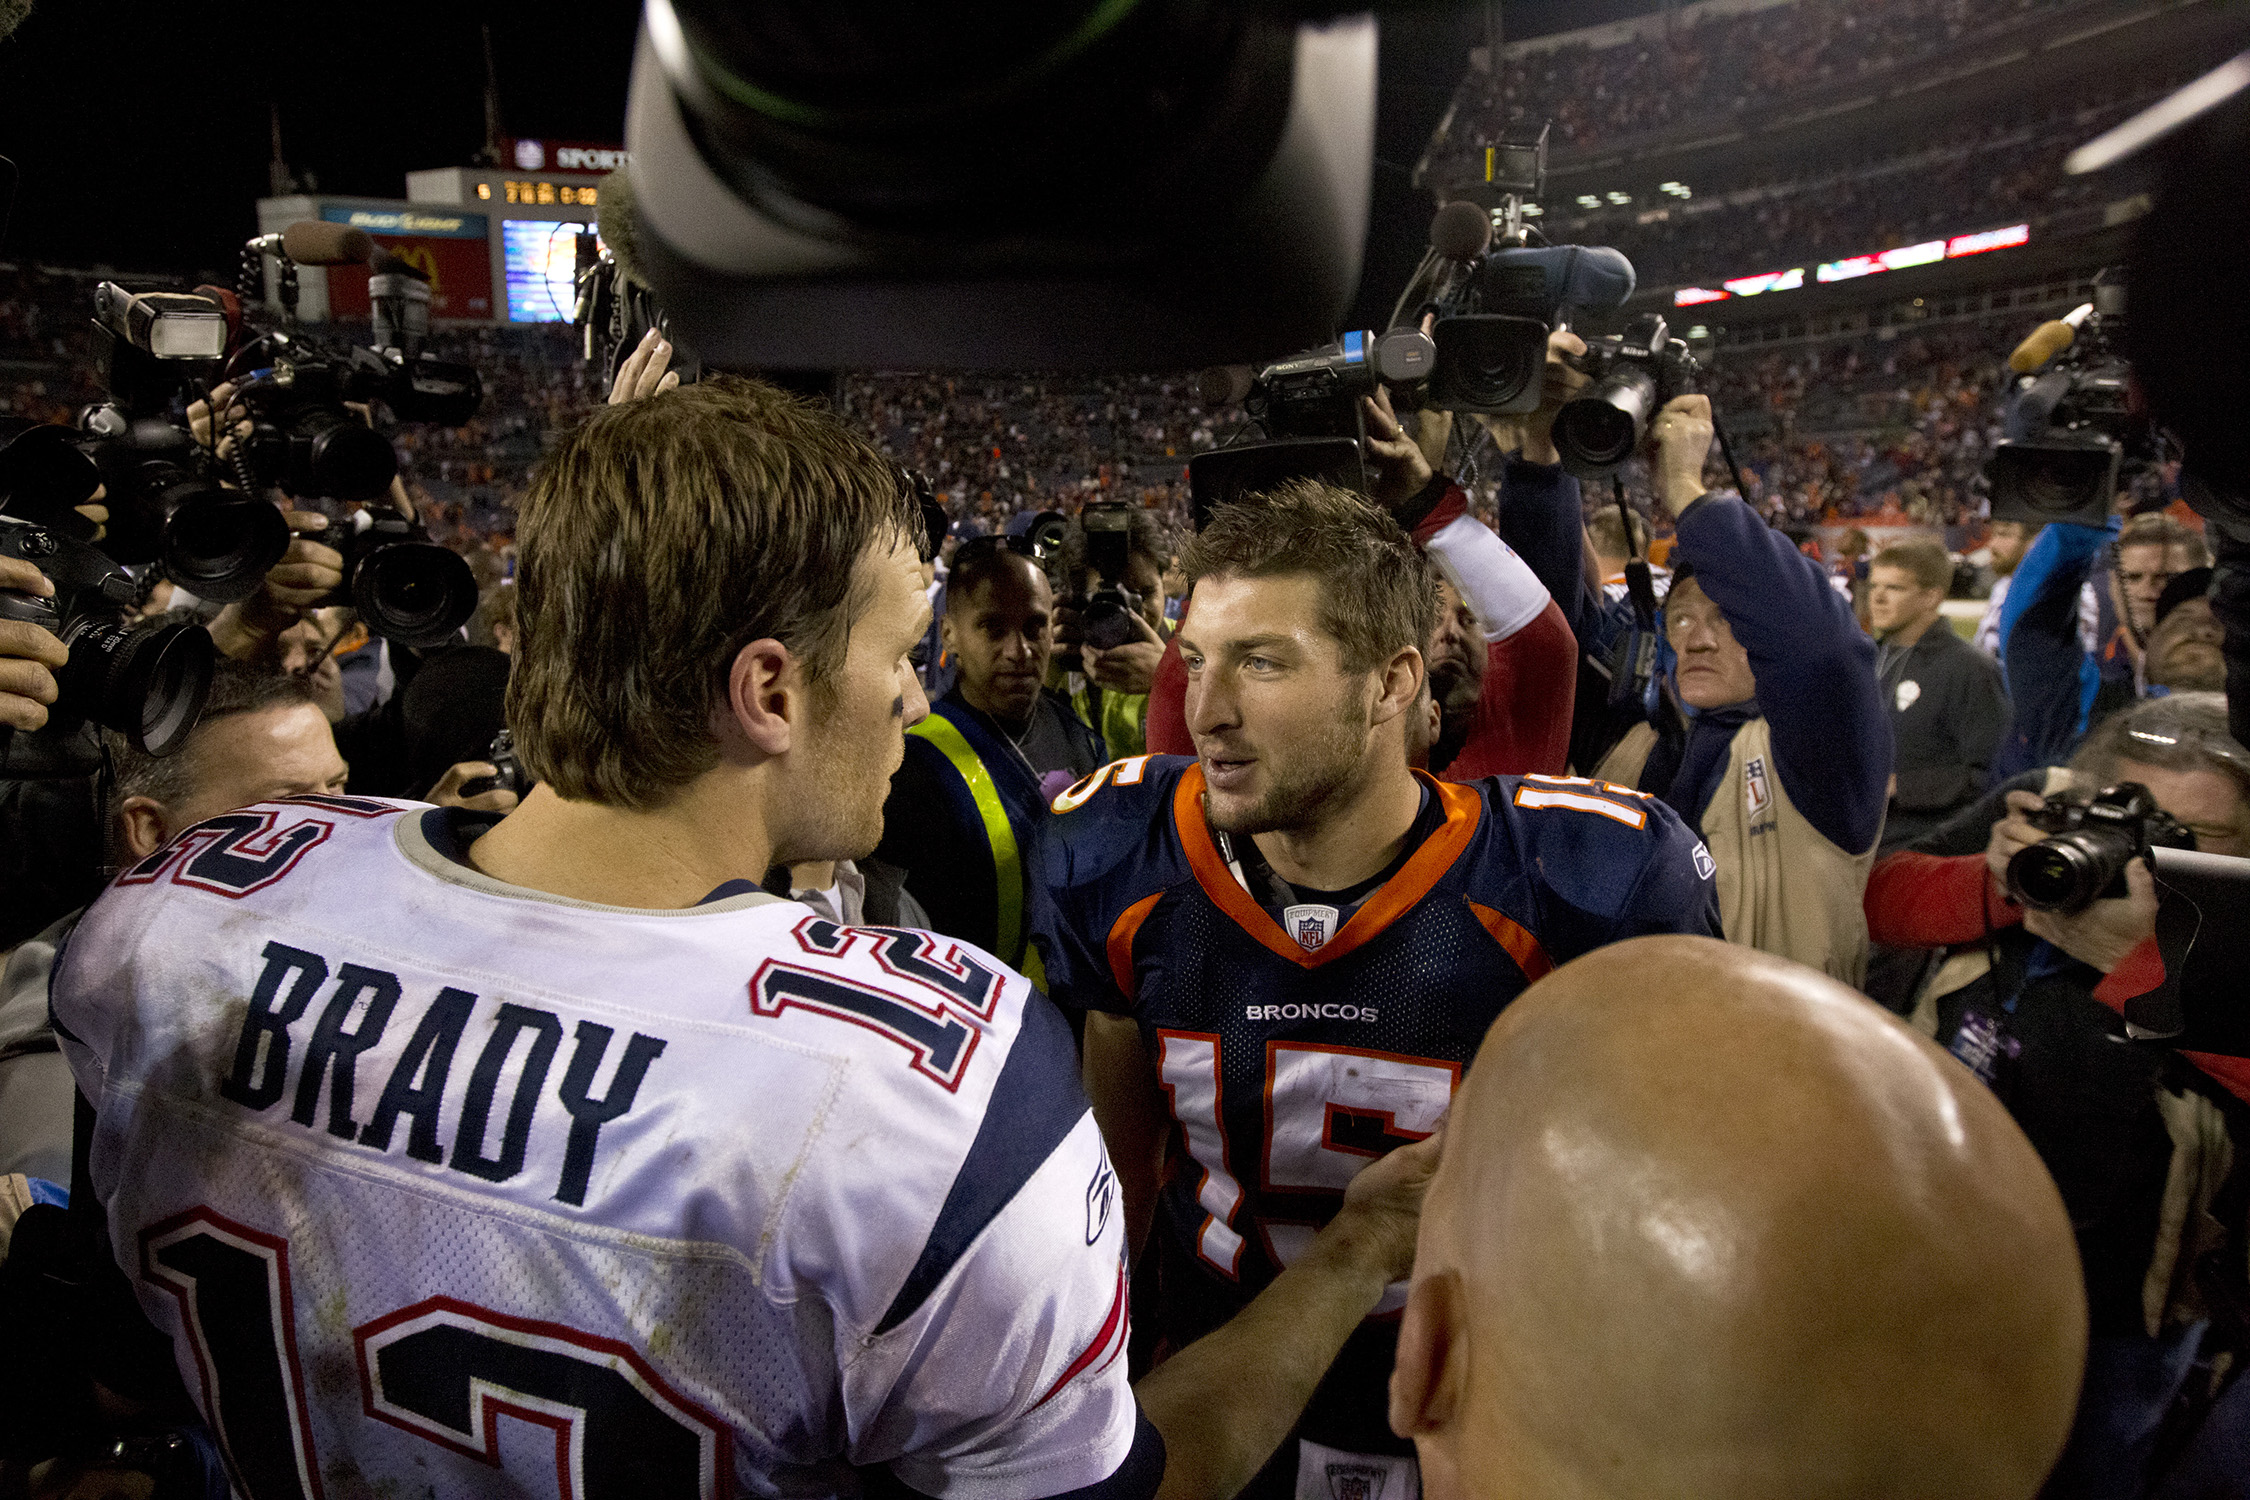 Broncos fans despise Tom Brady. Why? We're not entirely sure. Brady has a losing record against Denver, including a 1–3 mark in the postseason. But the hate is visceral. Maybe because the Pats refused to bow down to Tim Tebow.